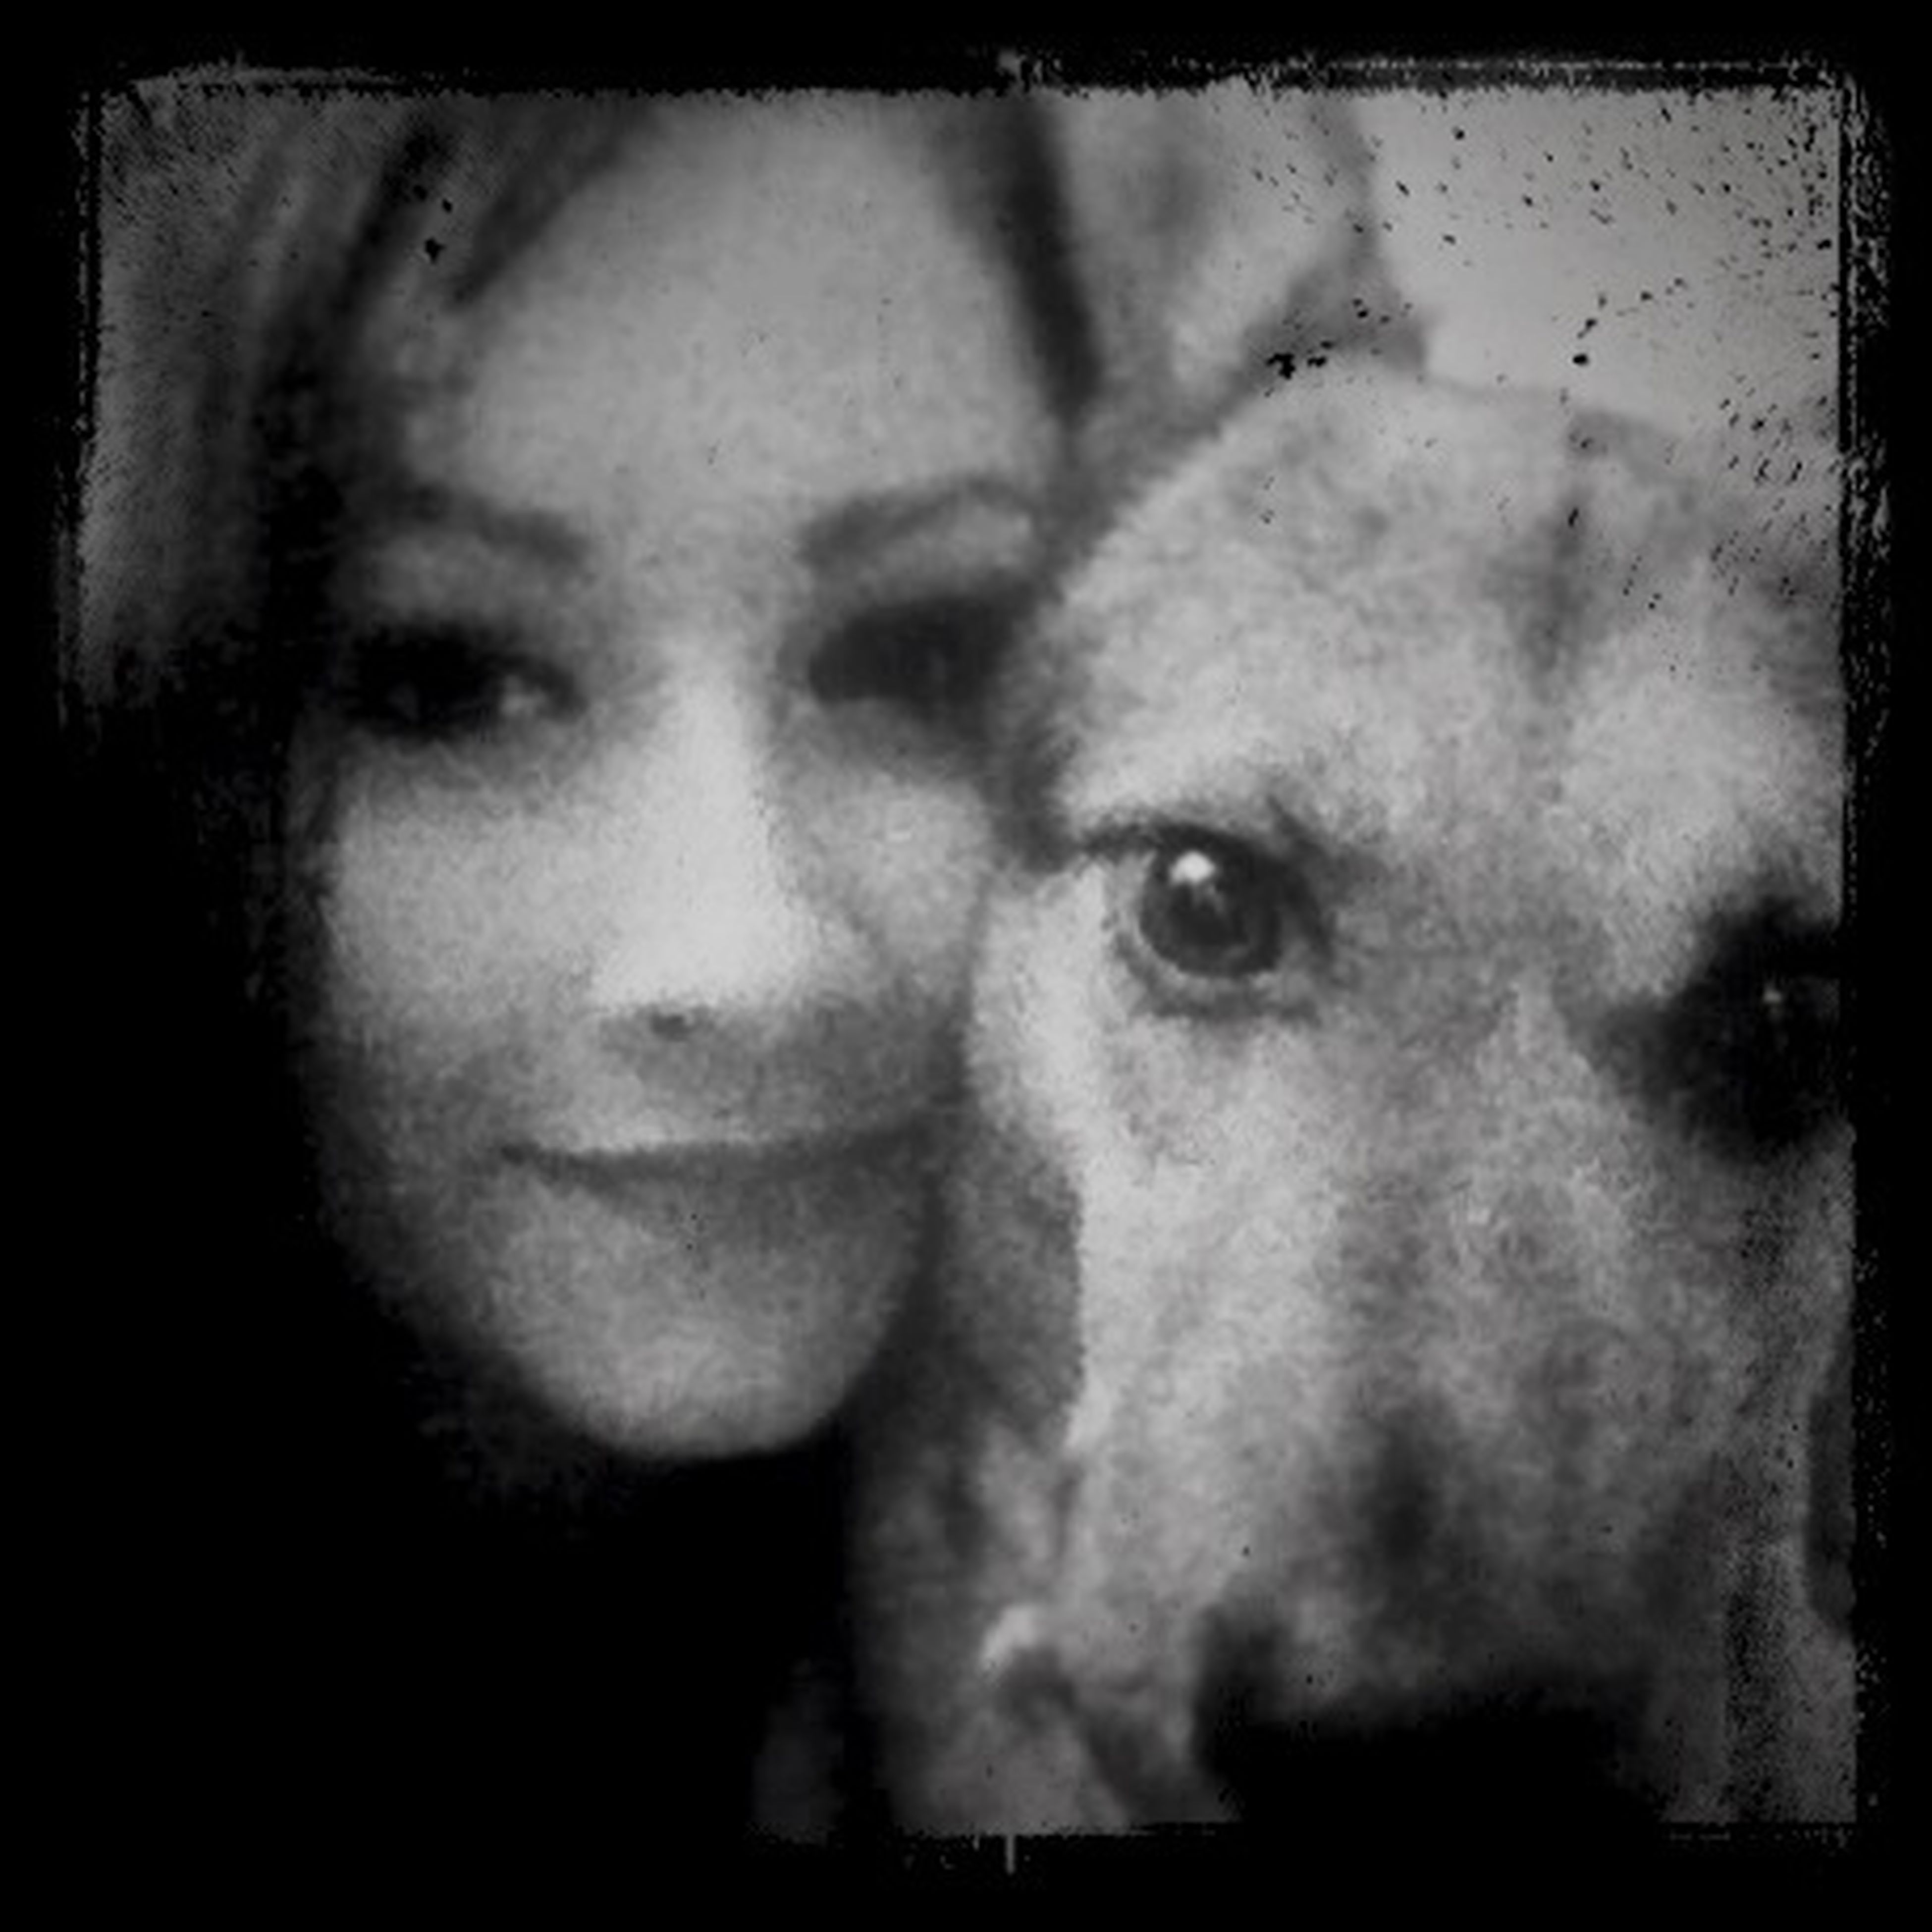 Me and Harley! ❤